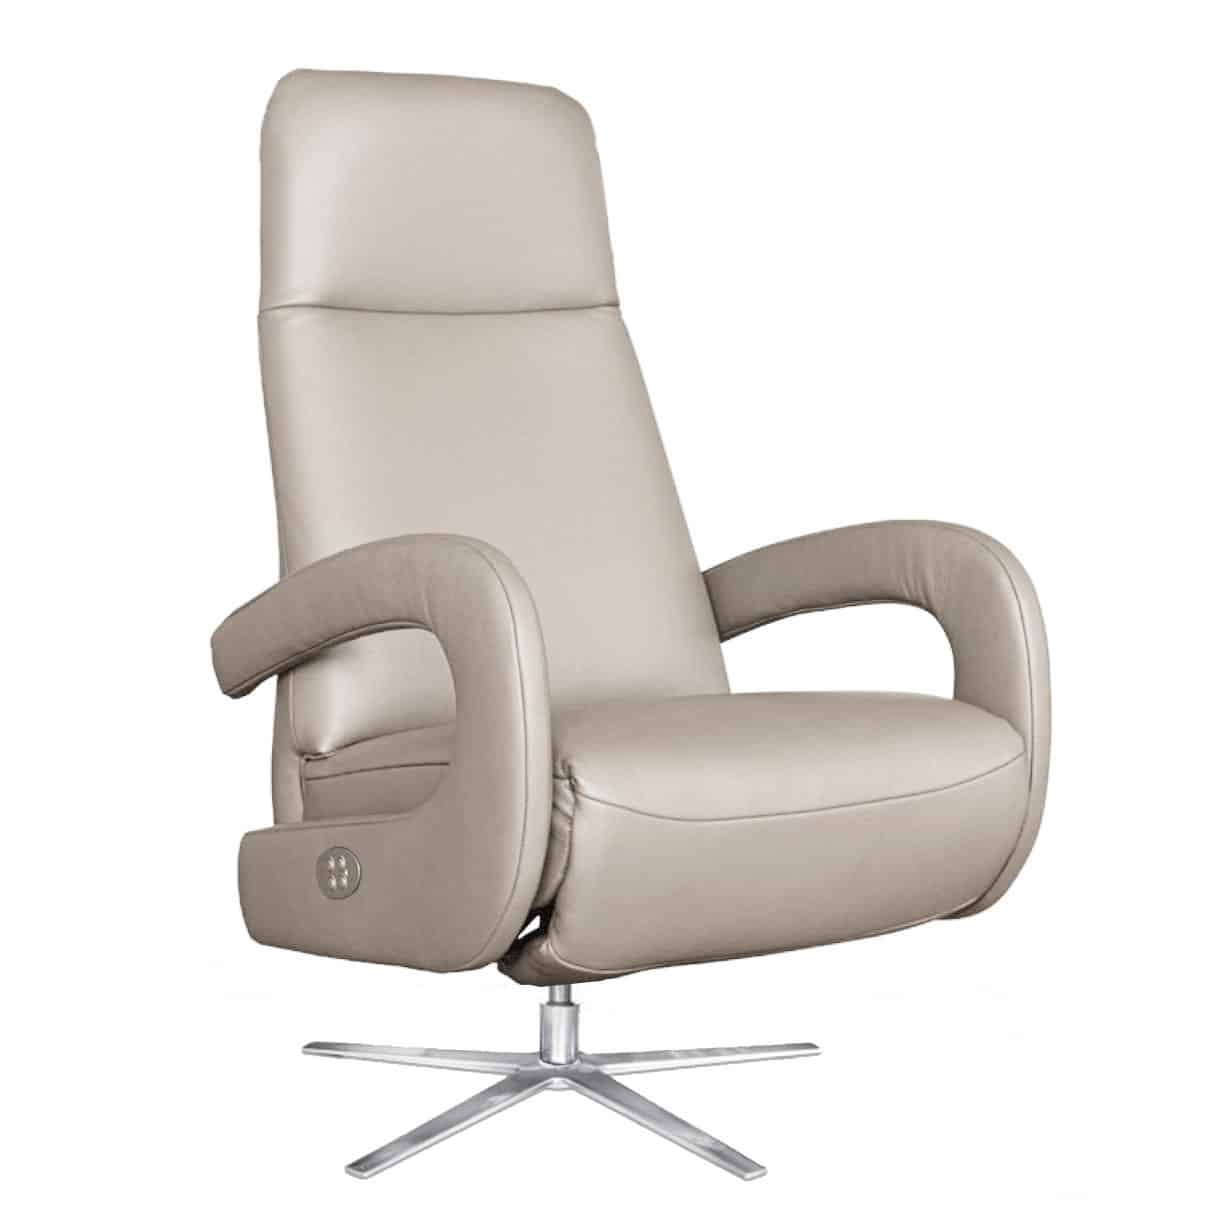 Sessel-Select-taupe-motorisch